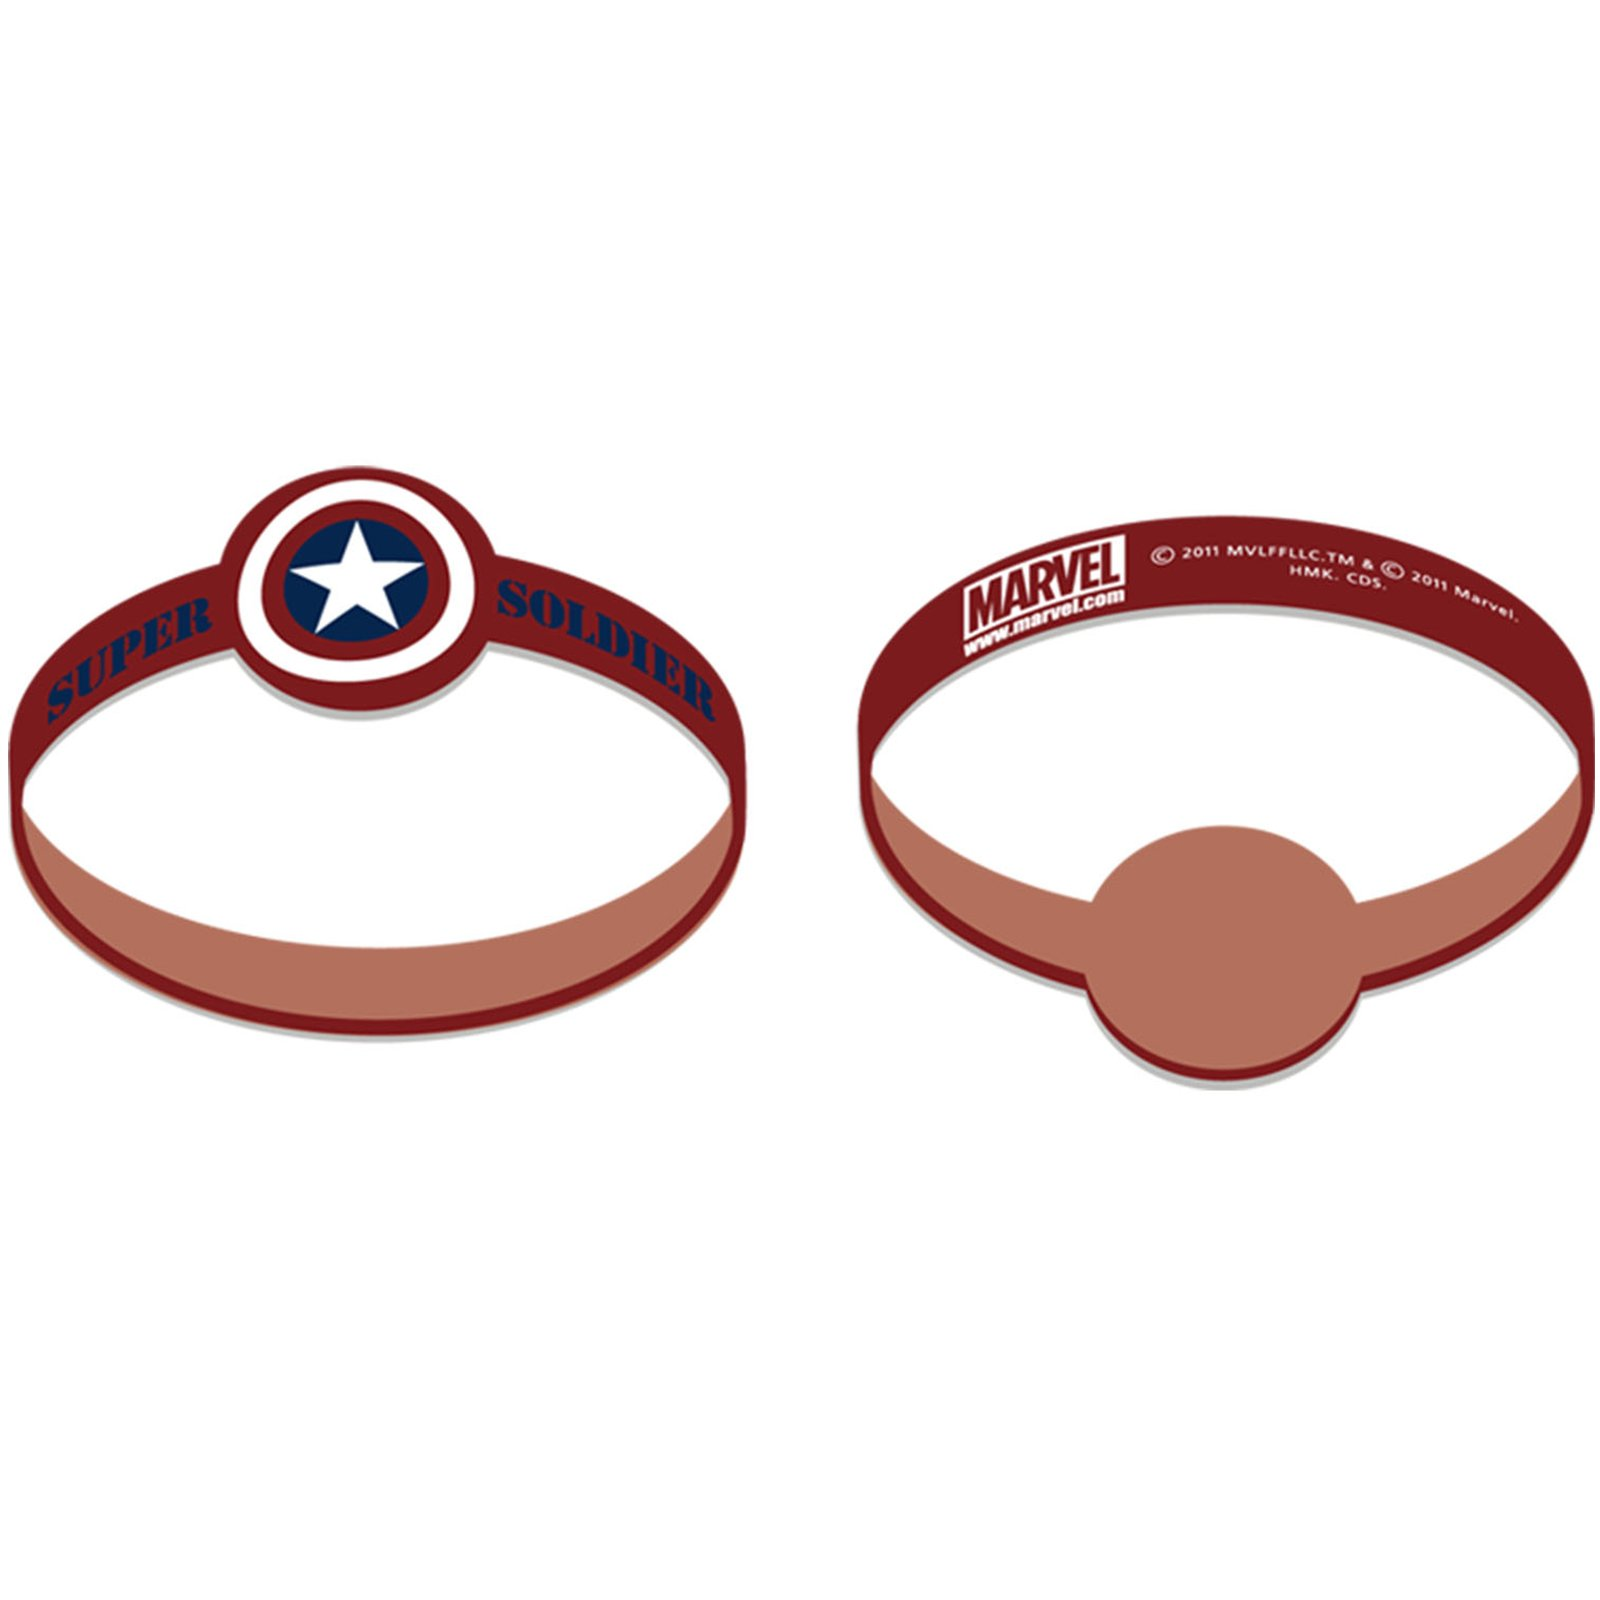 Captain America - Wristbands (4 count)